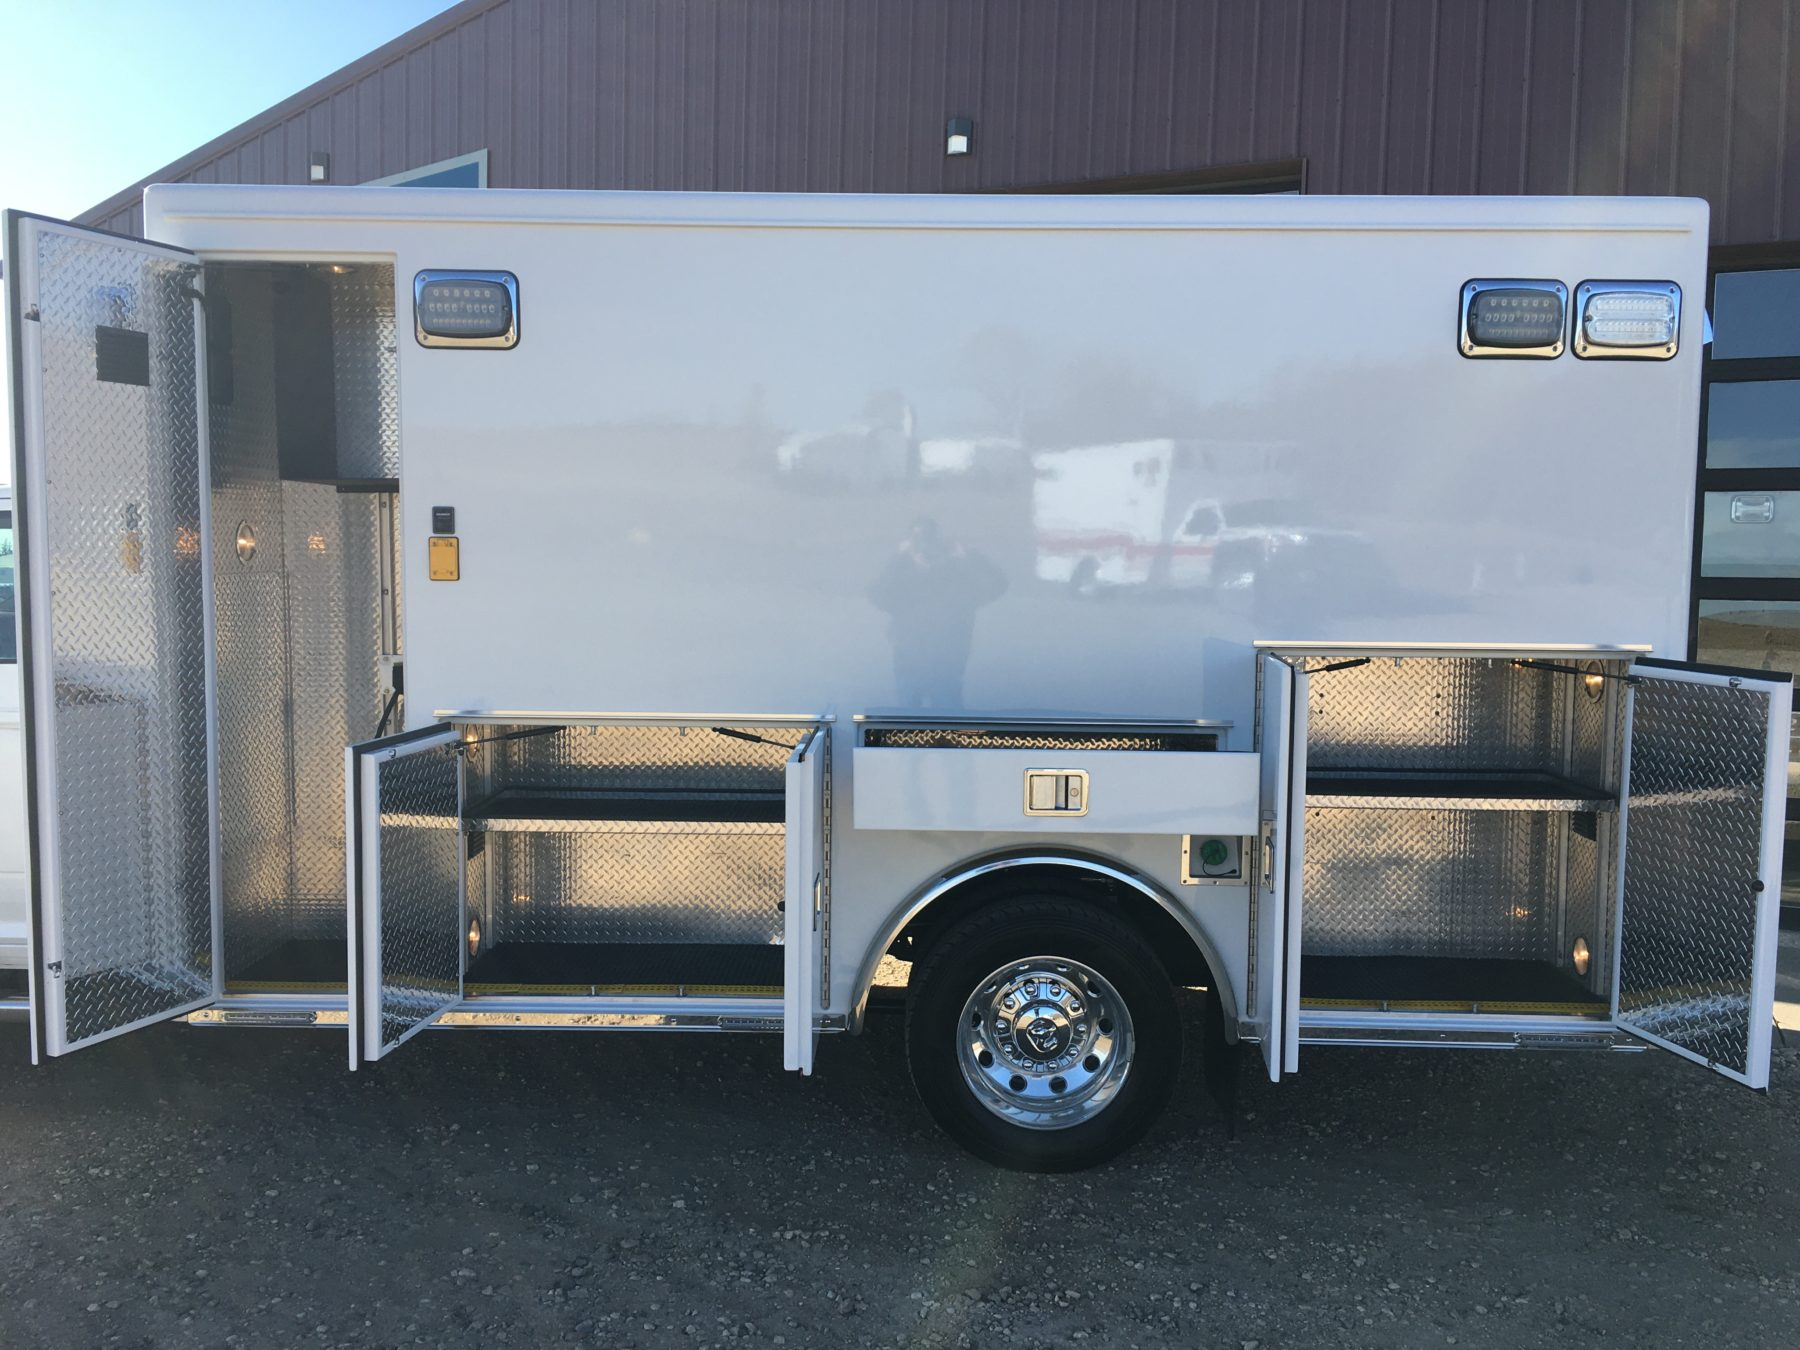 2020 Ram 4500 4x4 Heavy Duty Ambulance For Sale – Picture 5